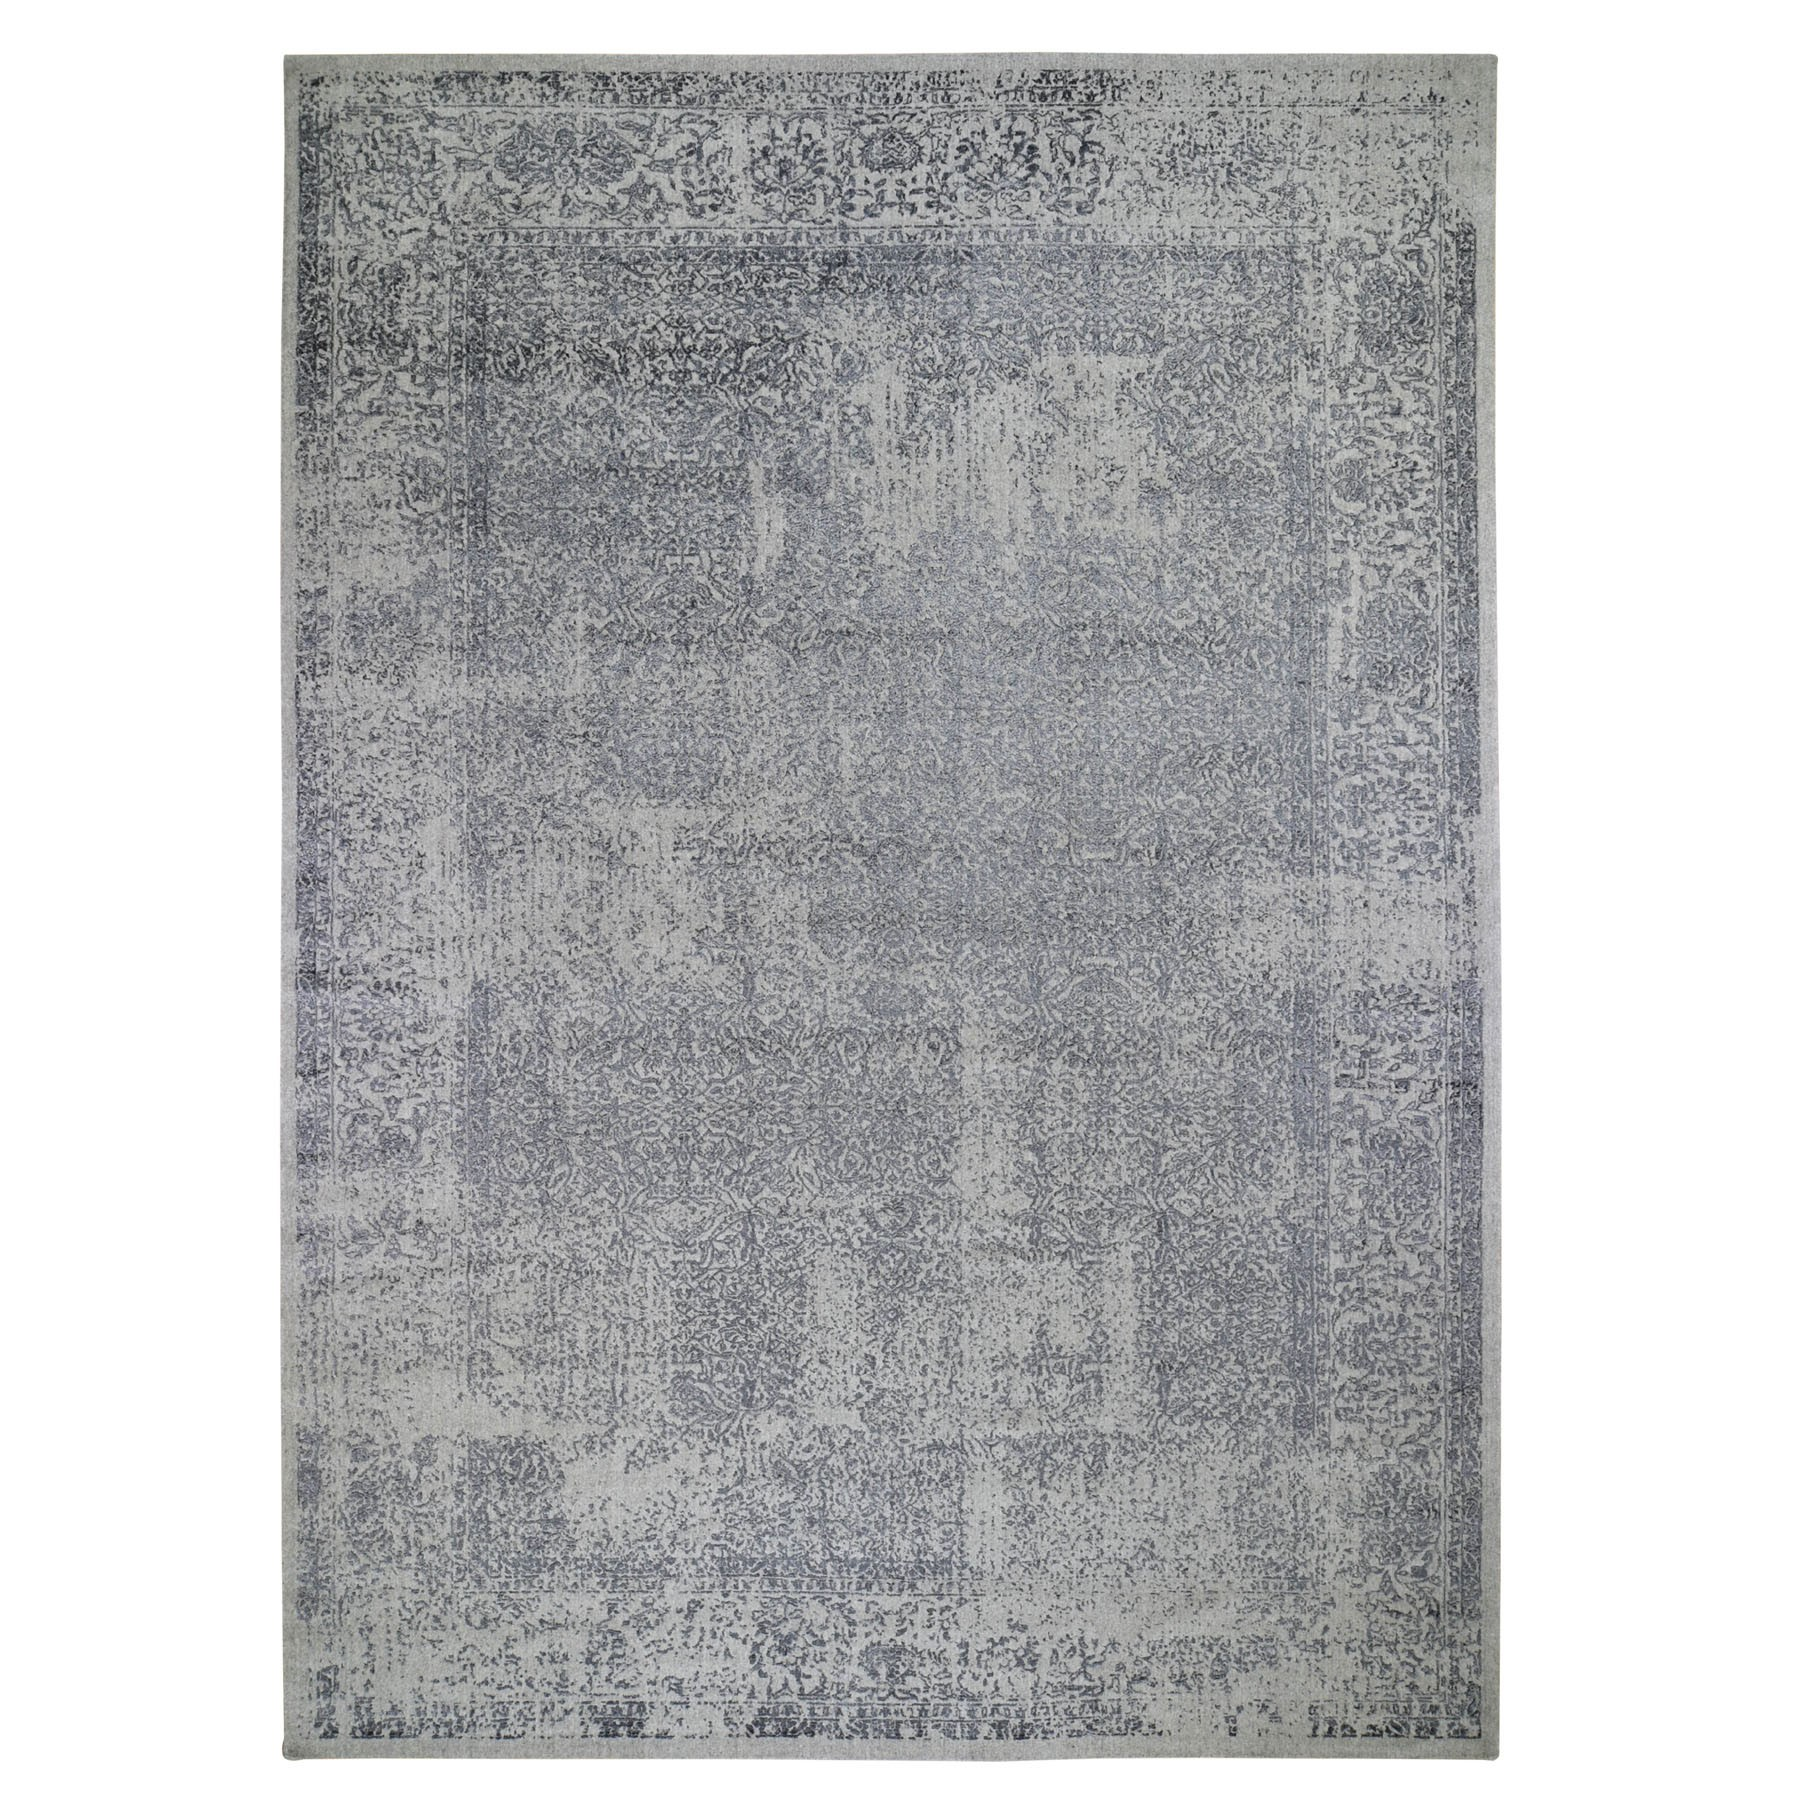 "9'10""X14' Fine Jacquard Hand Loomed Erased Design Wool And Silk Oriental Rug moad86e7"